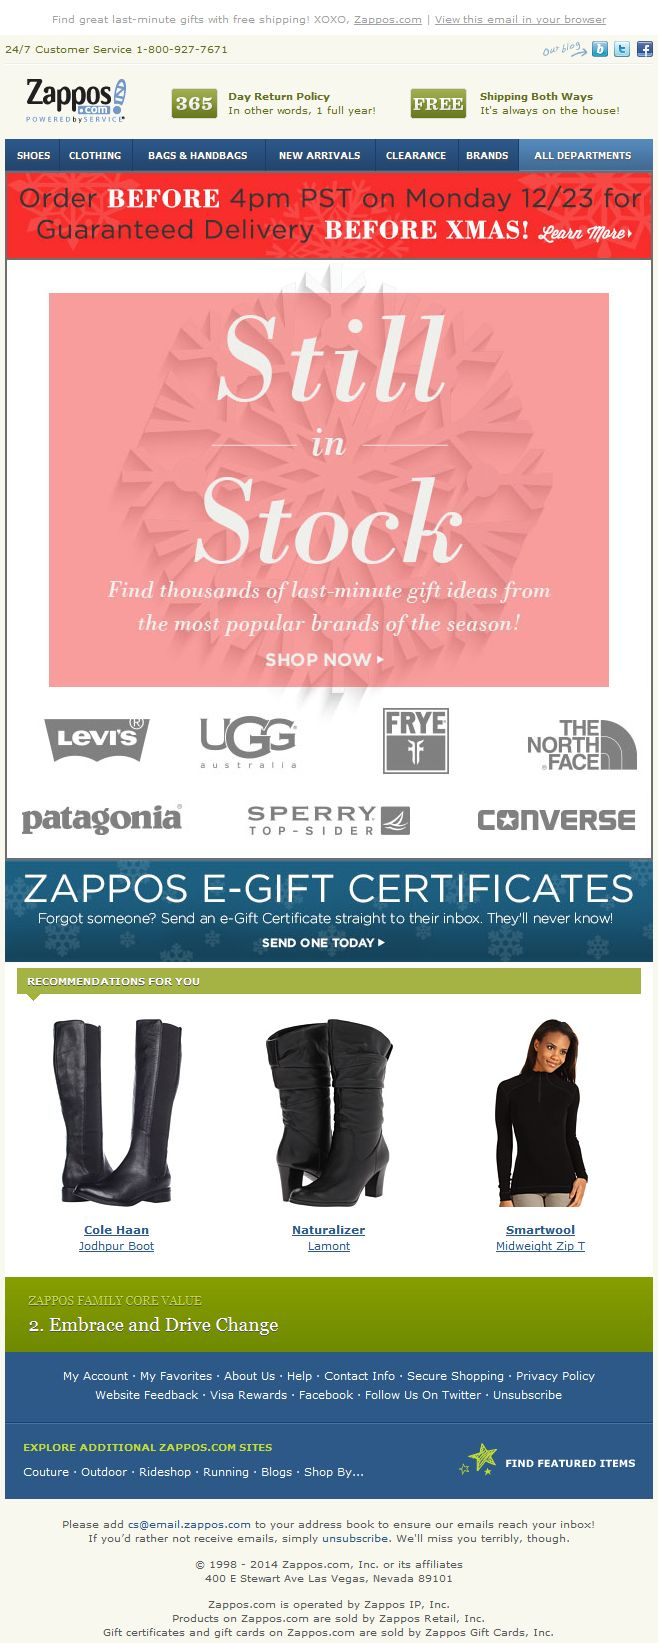 vip zappos free overnight shipping